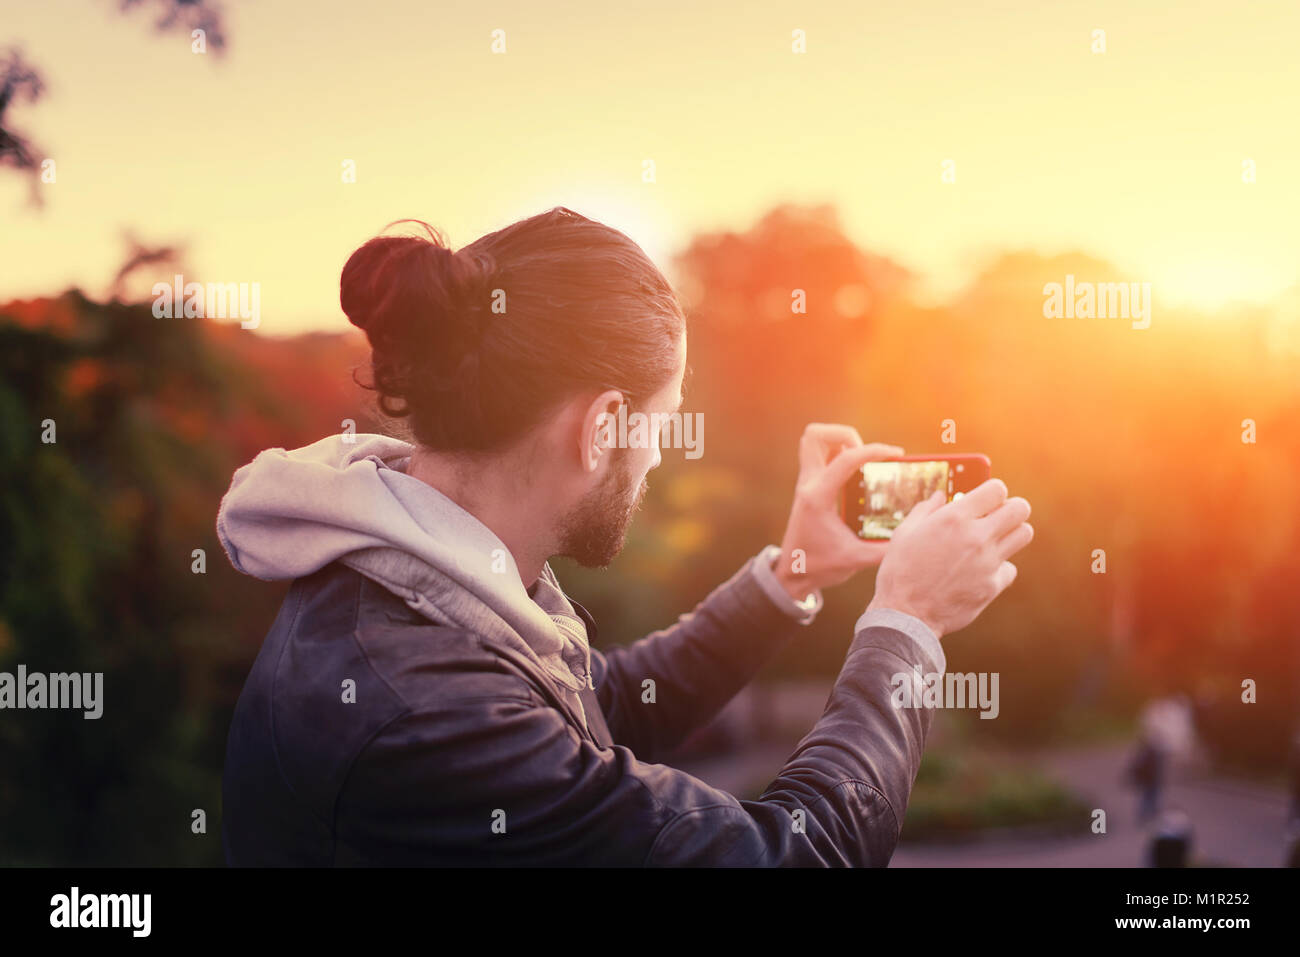 The guy makes a photo of the sunset on the phone. Tourist with phone. Photos and low keys and with a soft focus. - Stock Image